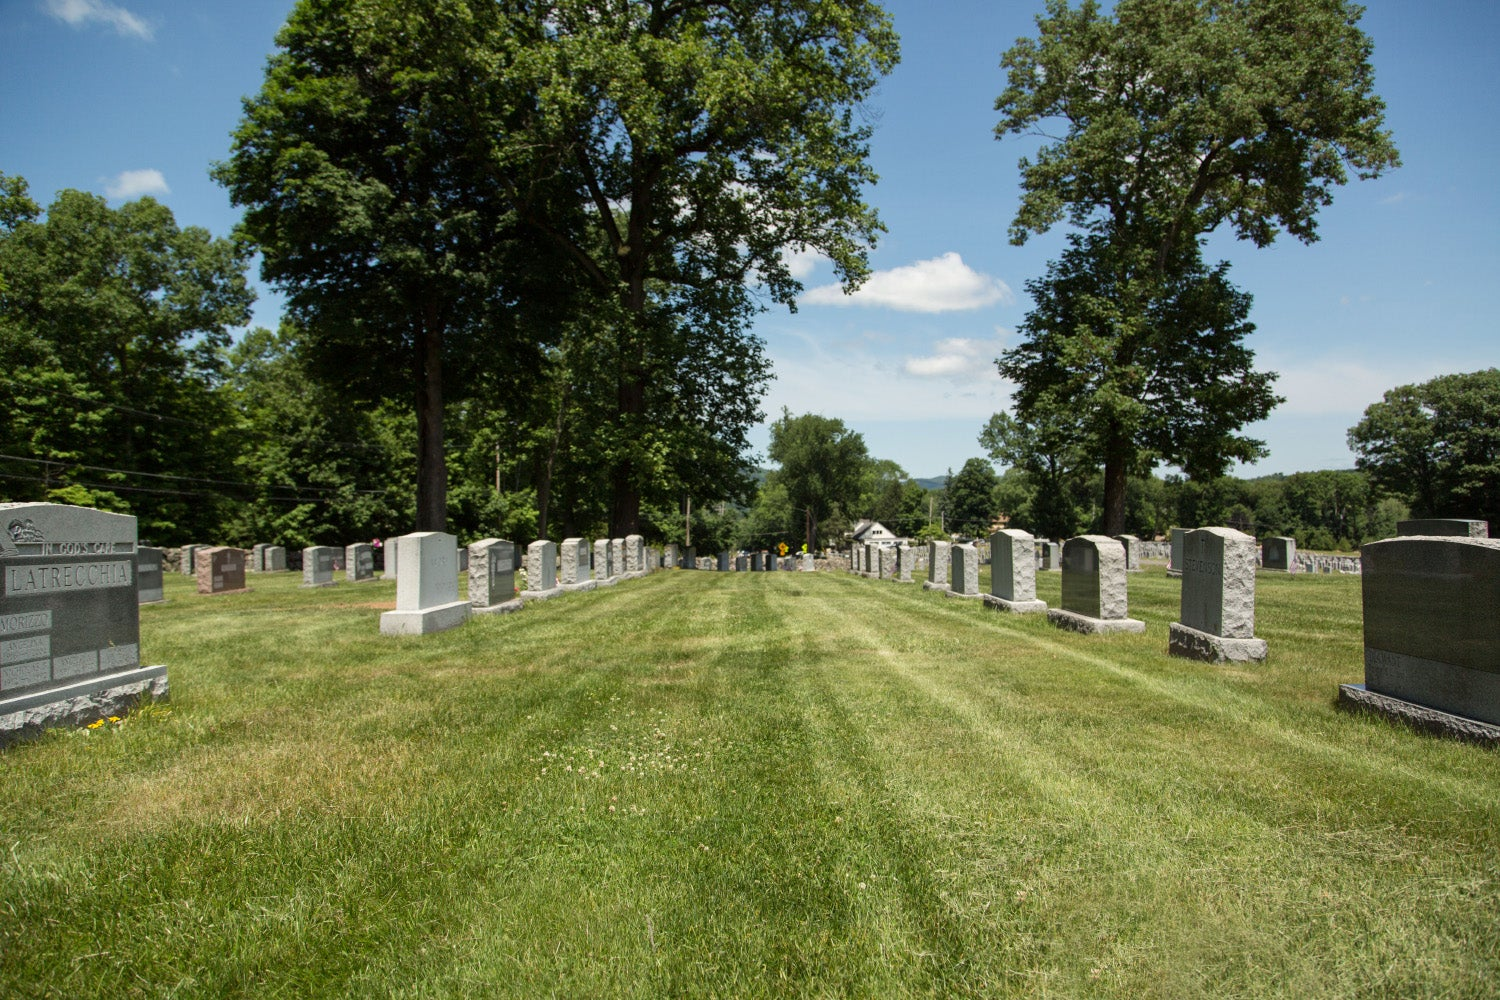 One of the cemeteries owned by the Roman Catholic Archdiocese of Newark. (Photo: Institute for Justice)